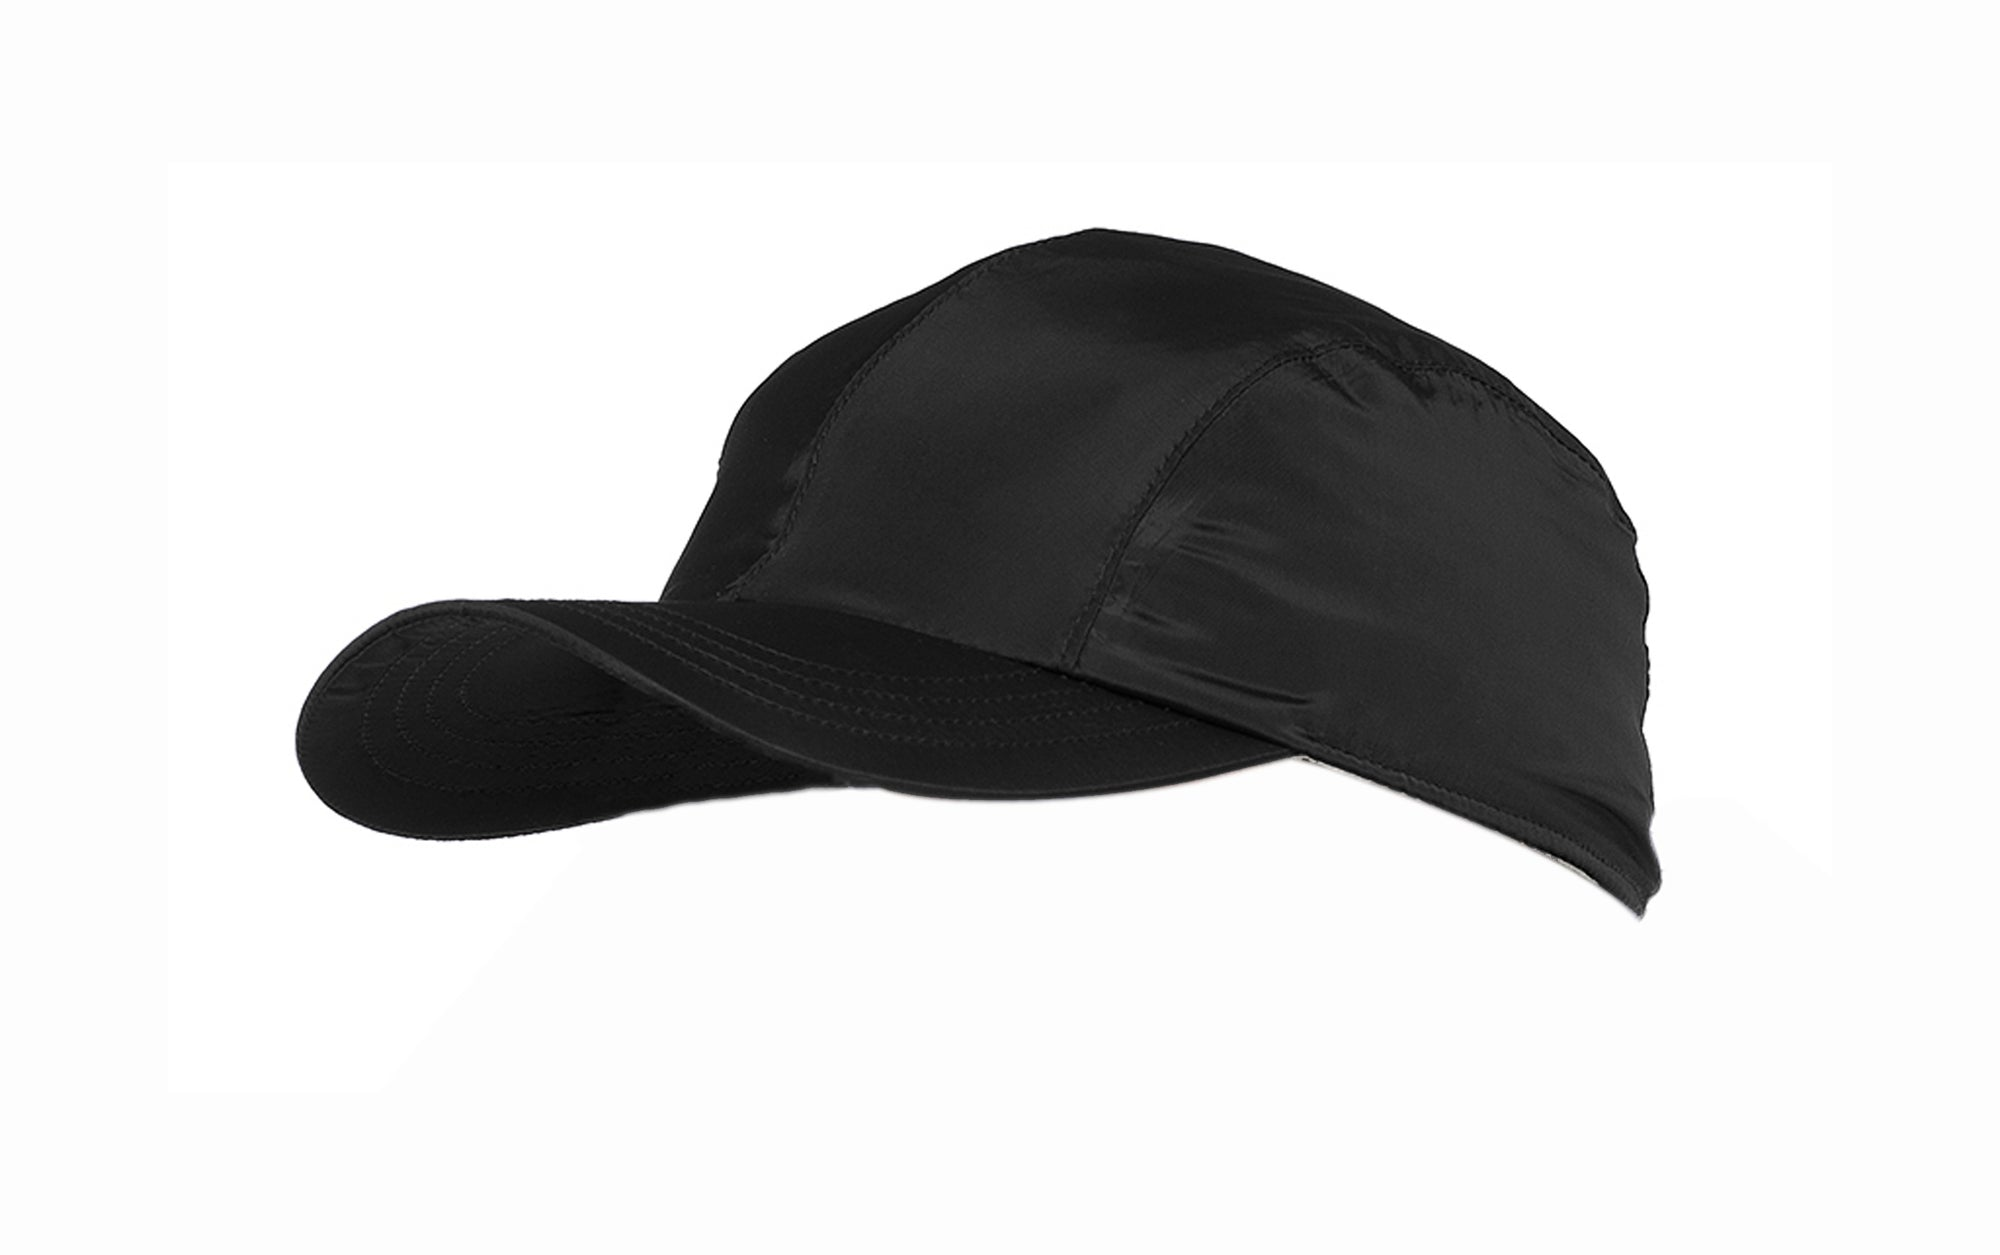 Octave Mens Waterproof Baseball Cap - Black